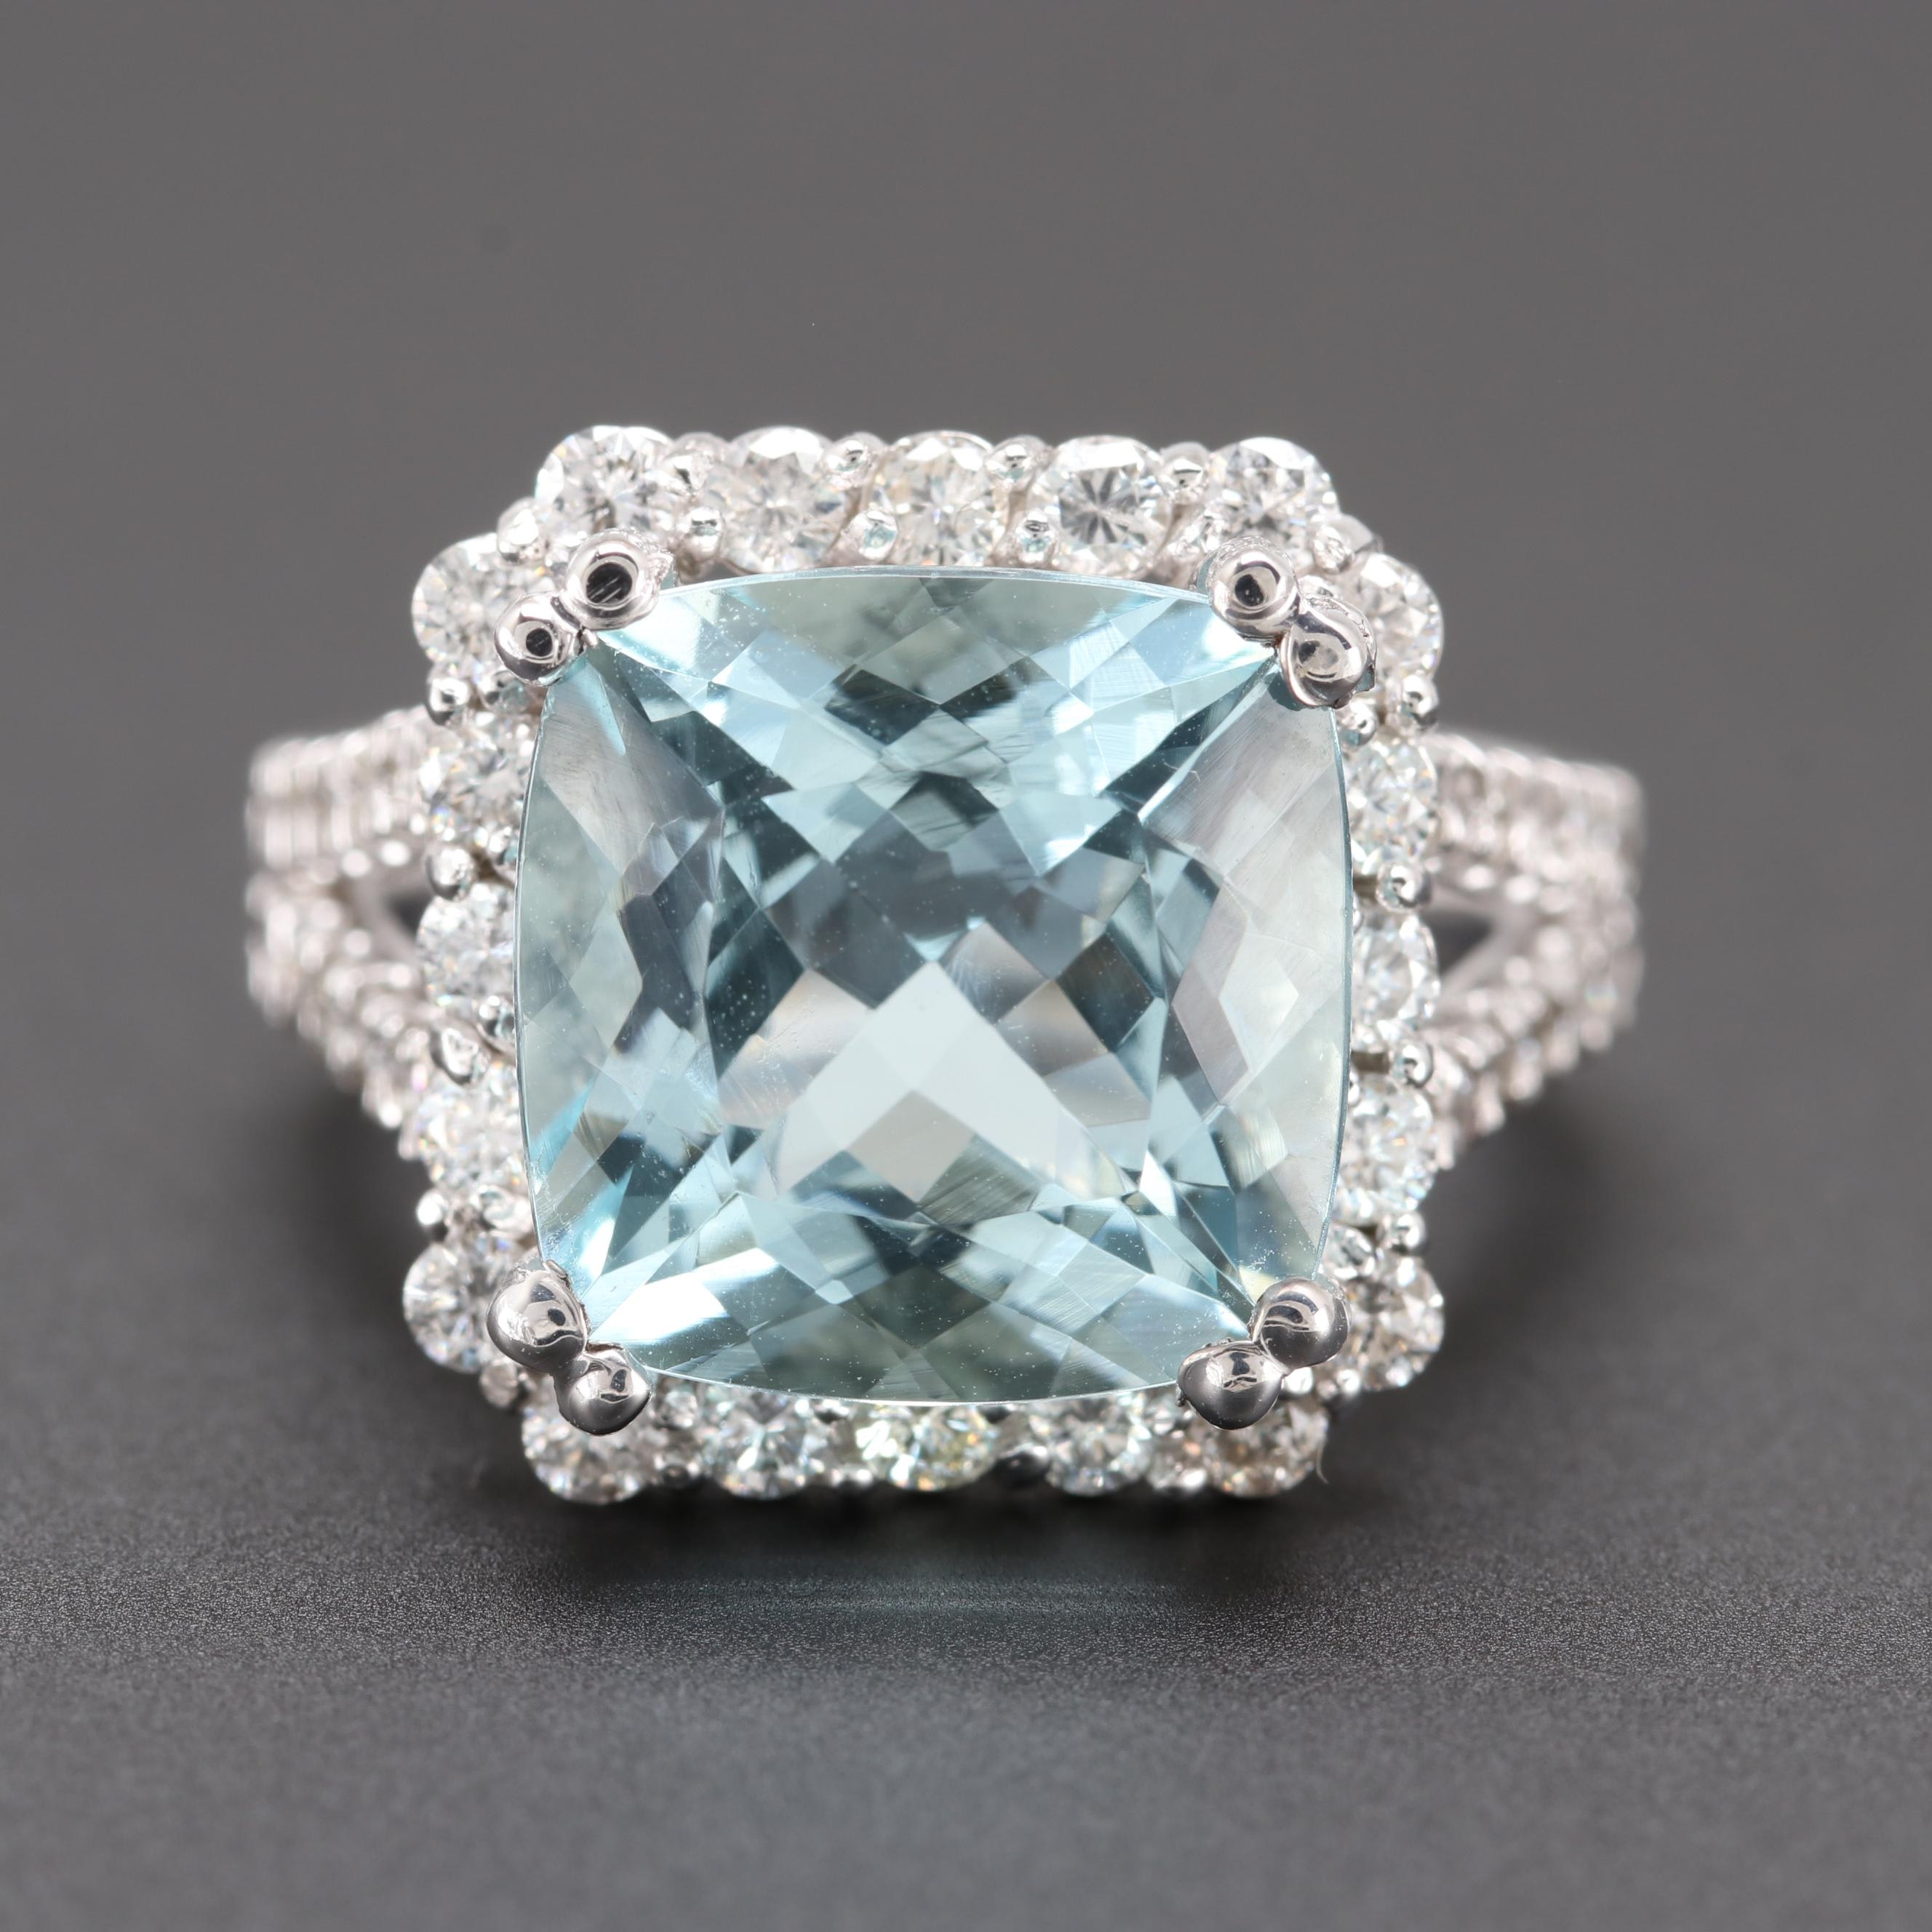 14K White Gold 5.37 CT Aquamarine and 1.08 CTW Diamond Ring